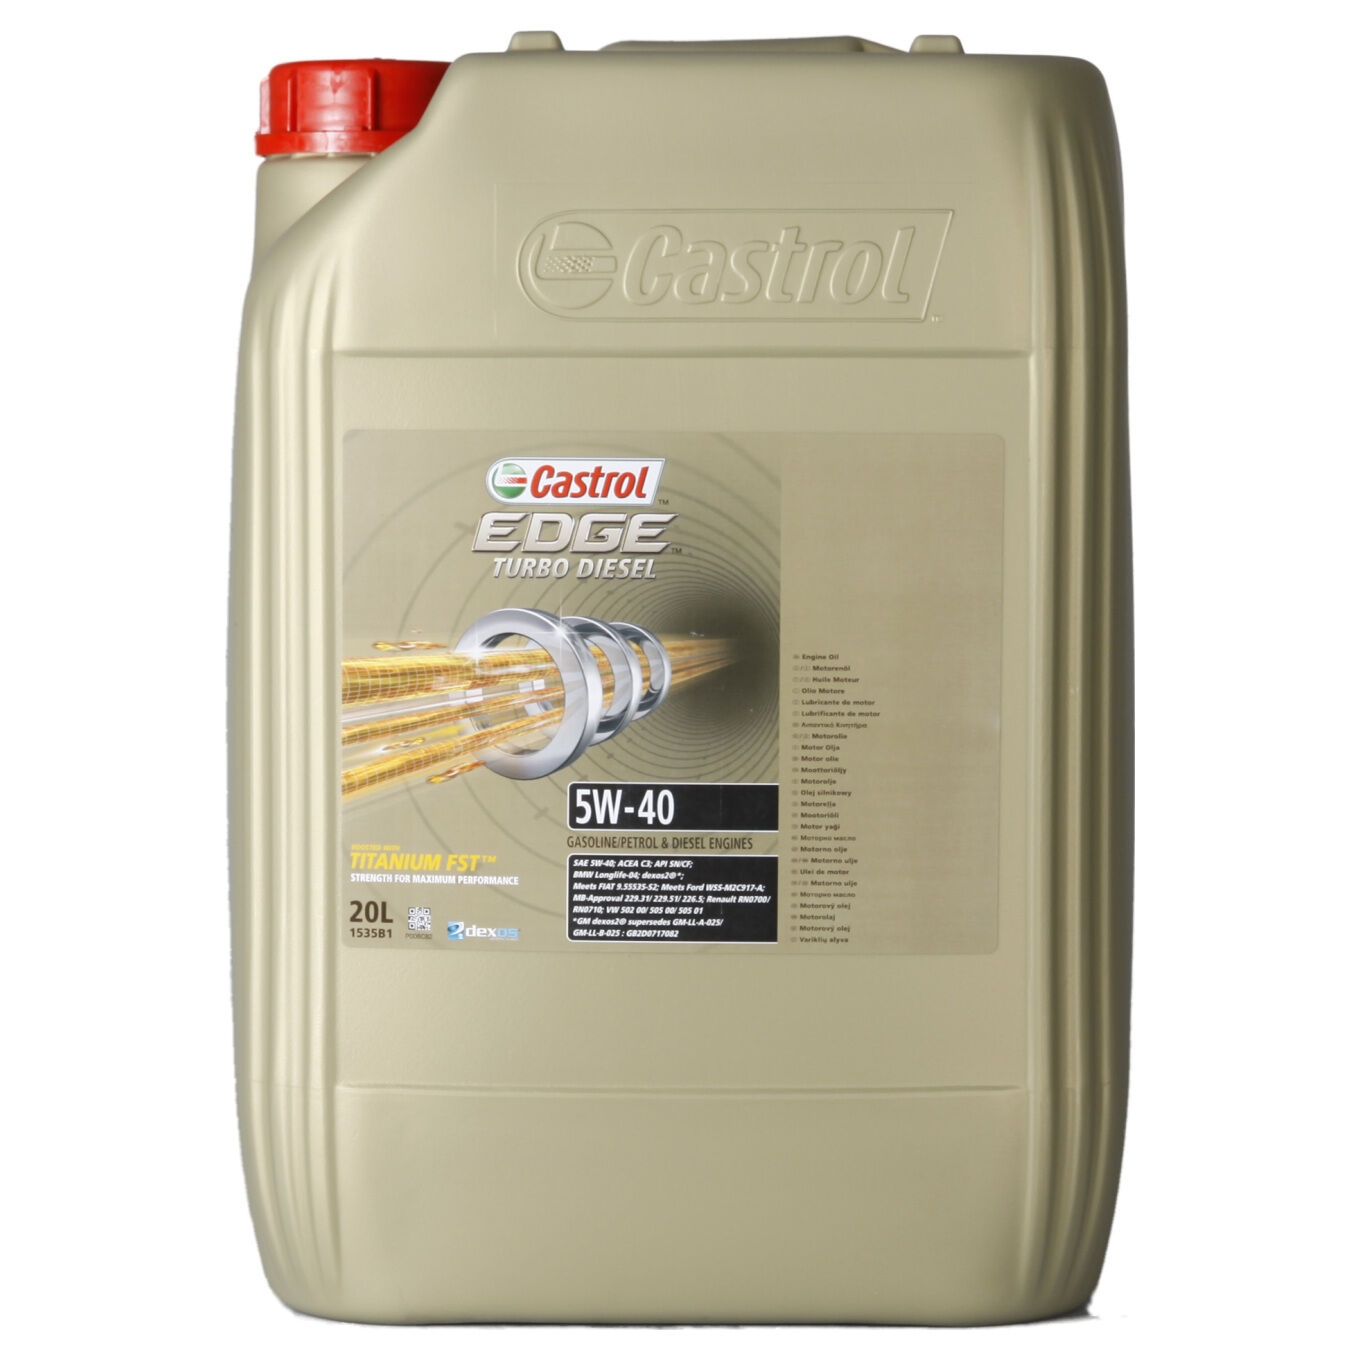 castrol edge titanium fst turbo diesel 5w 40 20 litre. Black Bedroom Furniture Sets. Home Design Ideas